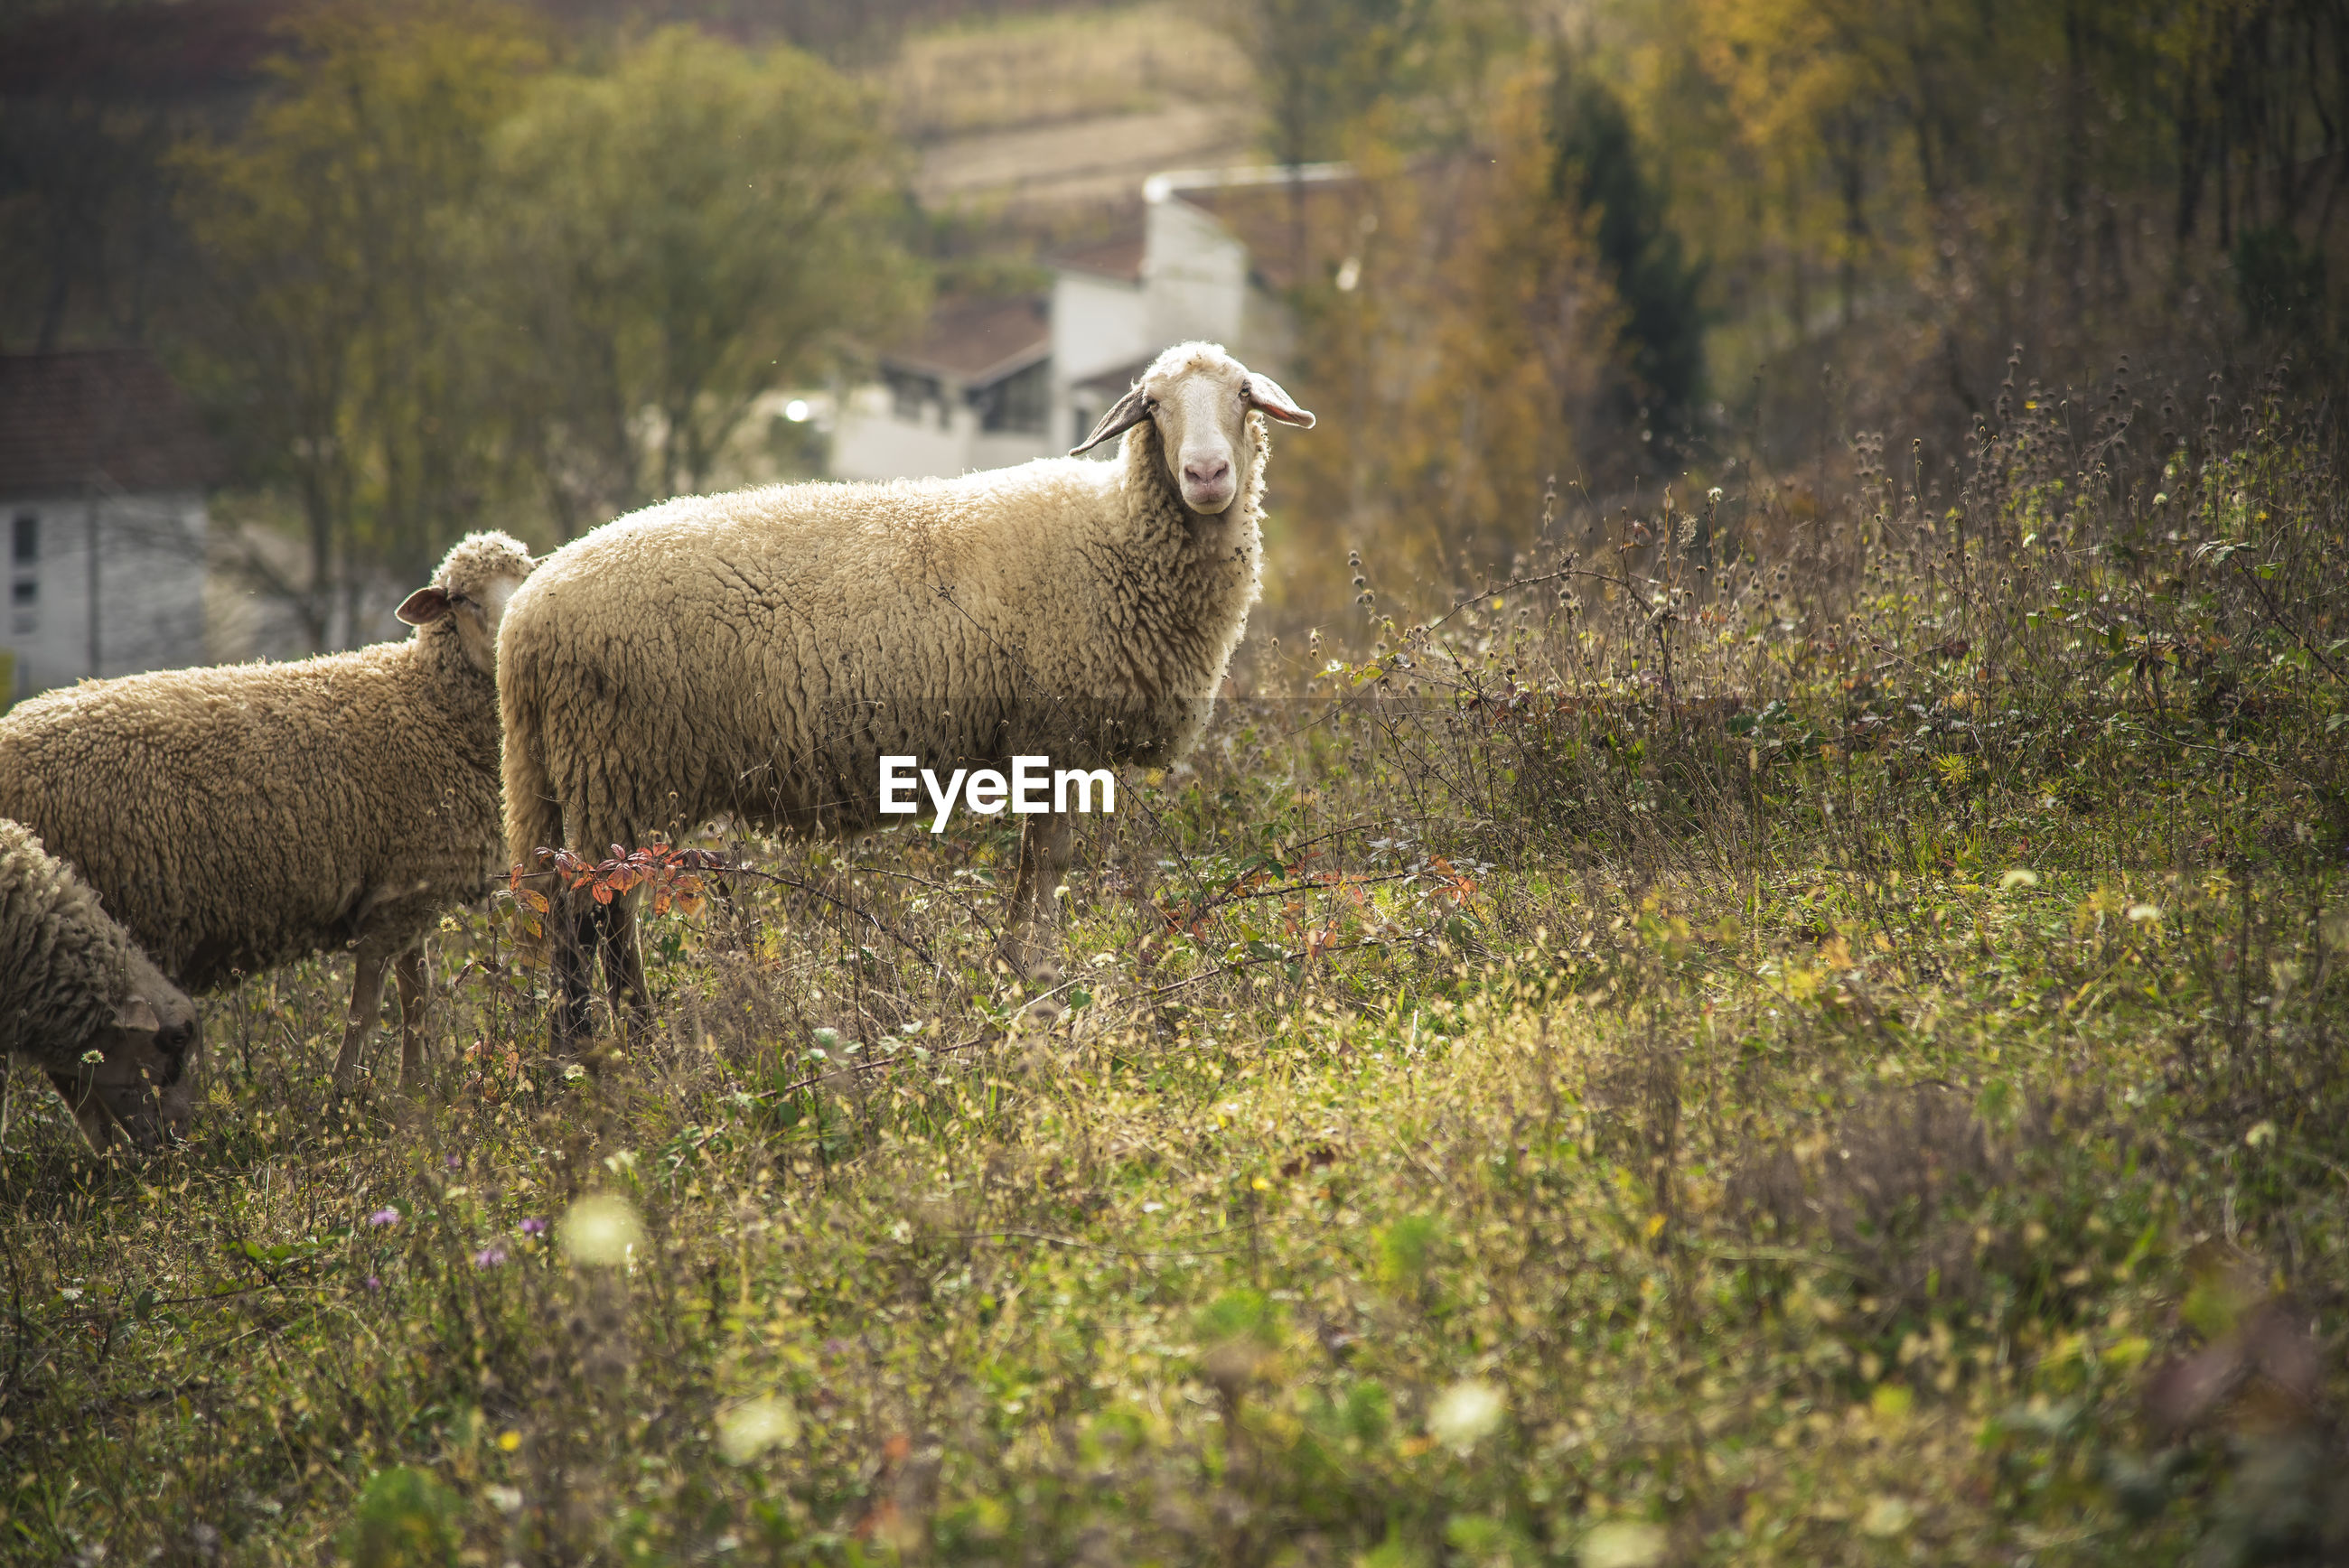 domestic animals, animal themes, mammal, livestock, sheep, no people, field, grass, nature, day, lamb, outdoors, standing, growth, tree, beauty in nature